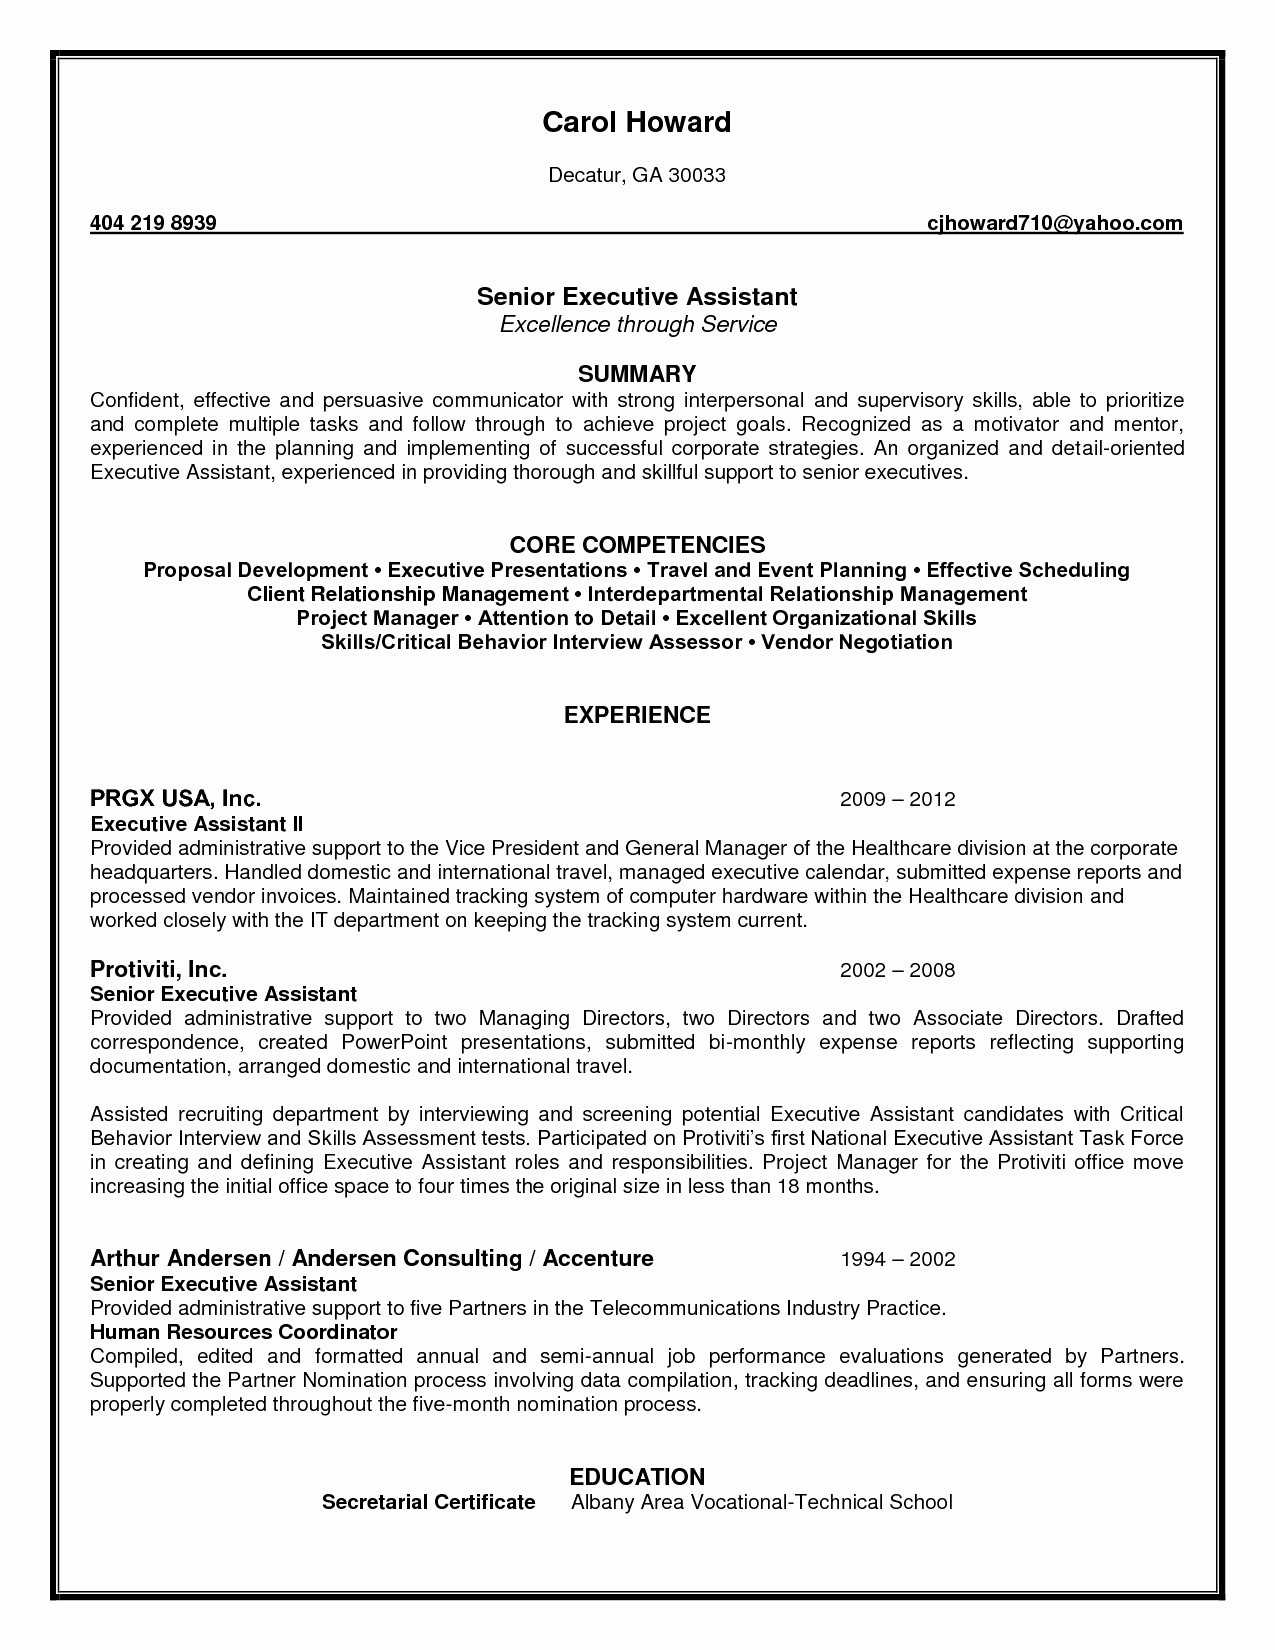 Resume for Office Job - Executive assistant Resumes Unique Resume Template Executive